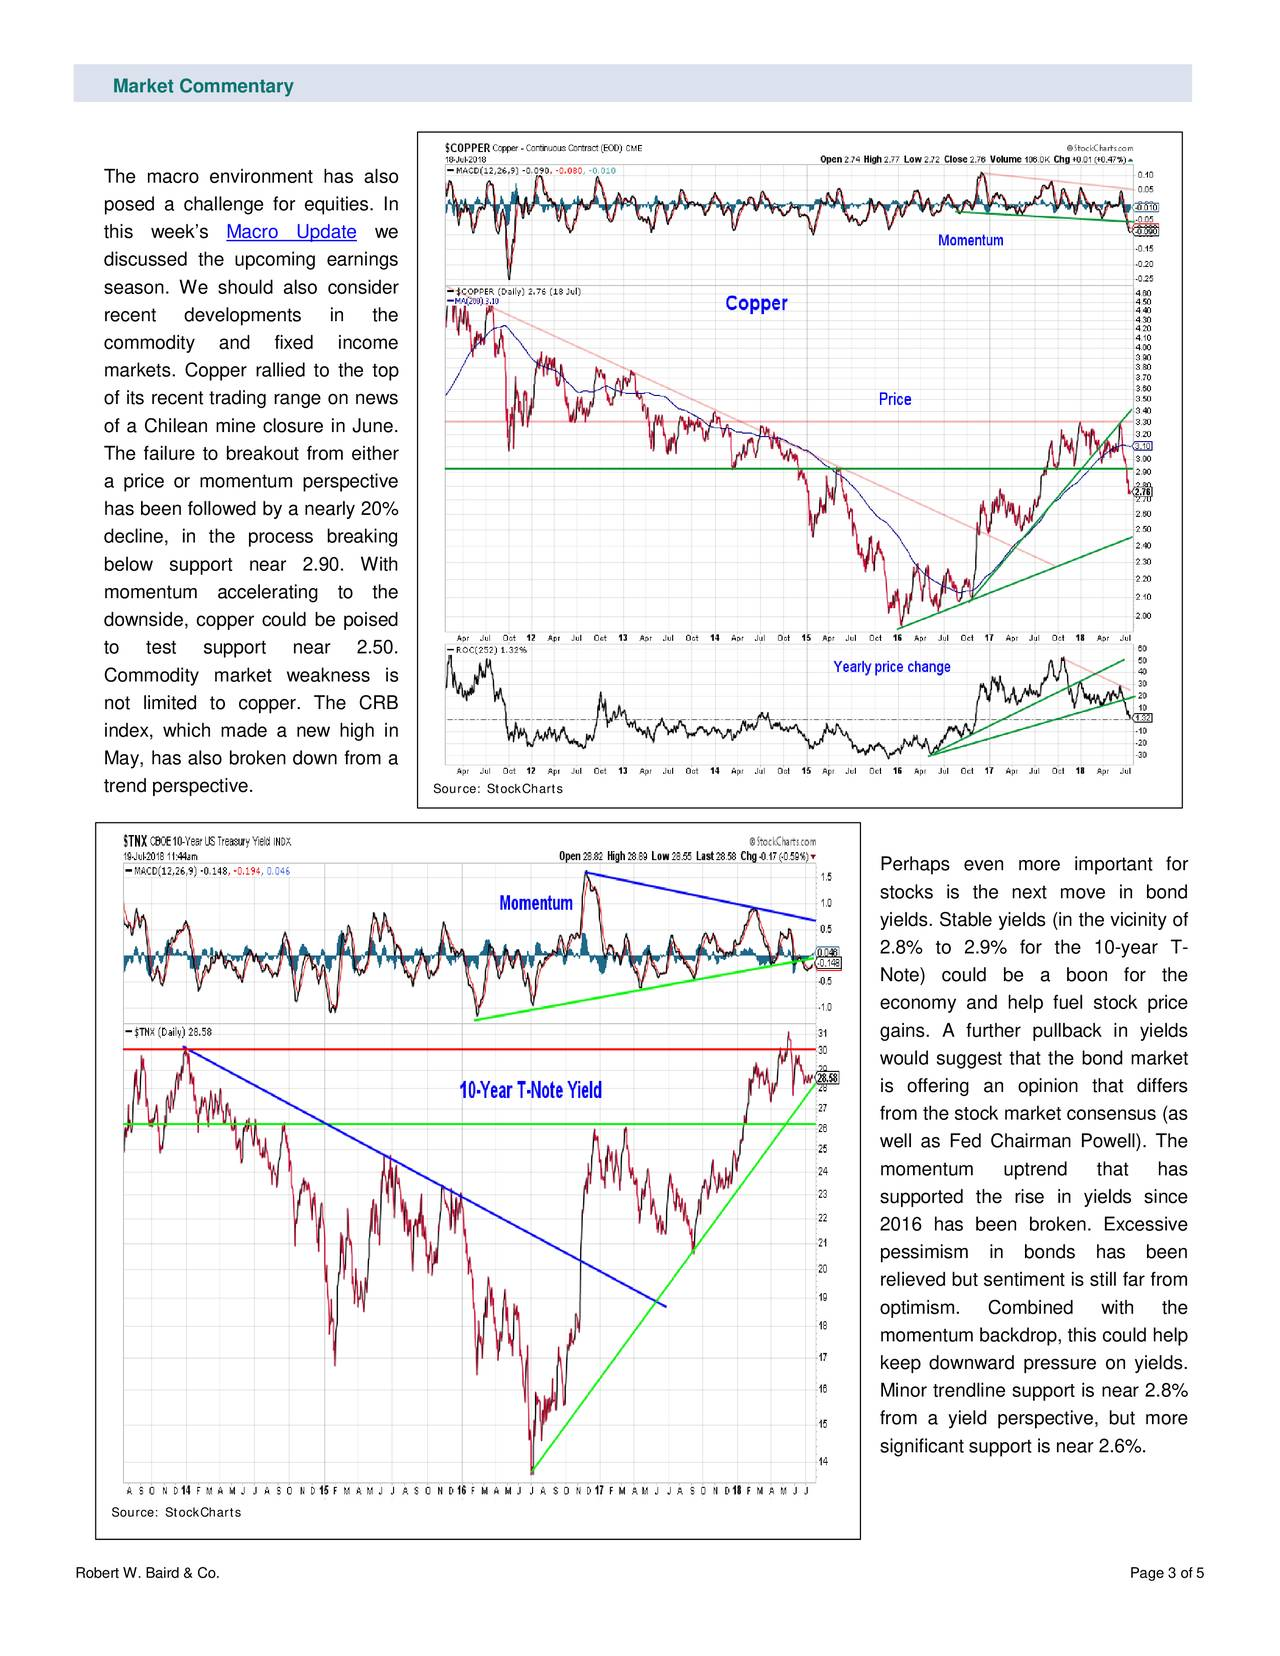 The macro environment has also posed a challenge for equities. In this week's Macro Update we discussed the upcoming earnings season. We should also consider recent developments in the commodity and fixed income markets. Copper rallied to the top of its recent trading range on news of a Chilean mine closure in June. The failure to breakout from either a price or momentum perspective has been followed by a nearly 20% decline, in the process breaking below support near 2.90. With momentum accelerating to the downside, copper could be poised to test support near 2.50. Commodity market weakness is not limited to copper. The CRB index, which m ade a new high in May, has also broken down from a trend perspective. Source: StockCharts Perhaps even more important for stocks is the next move in bond yields. Stable yields (in the vicinity of 2.8% to 2.9% for the 10-year T - Note) could be a boon f or the economy and help fuel stock price gains. A further pullback in yields would suggest that the bond market is offering an opinion that differs from the stock market consensus (as well as Fed Chairman Powell). The momentum uptrend that has supported the rise in yields since 2016 has been broken. Excessive pessimism in bonds has been relieved but sentiment is still far from optimism. Combined with the momentum backdrop, this could help keep downward pressure on yields. Minor trendline support is near 2.8% from a yield perspective, but more significant support is near 2.6%. Source: StockCharts Robert W. Baird & Co. Page 3 of 5